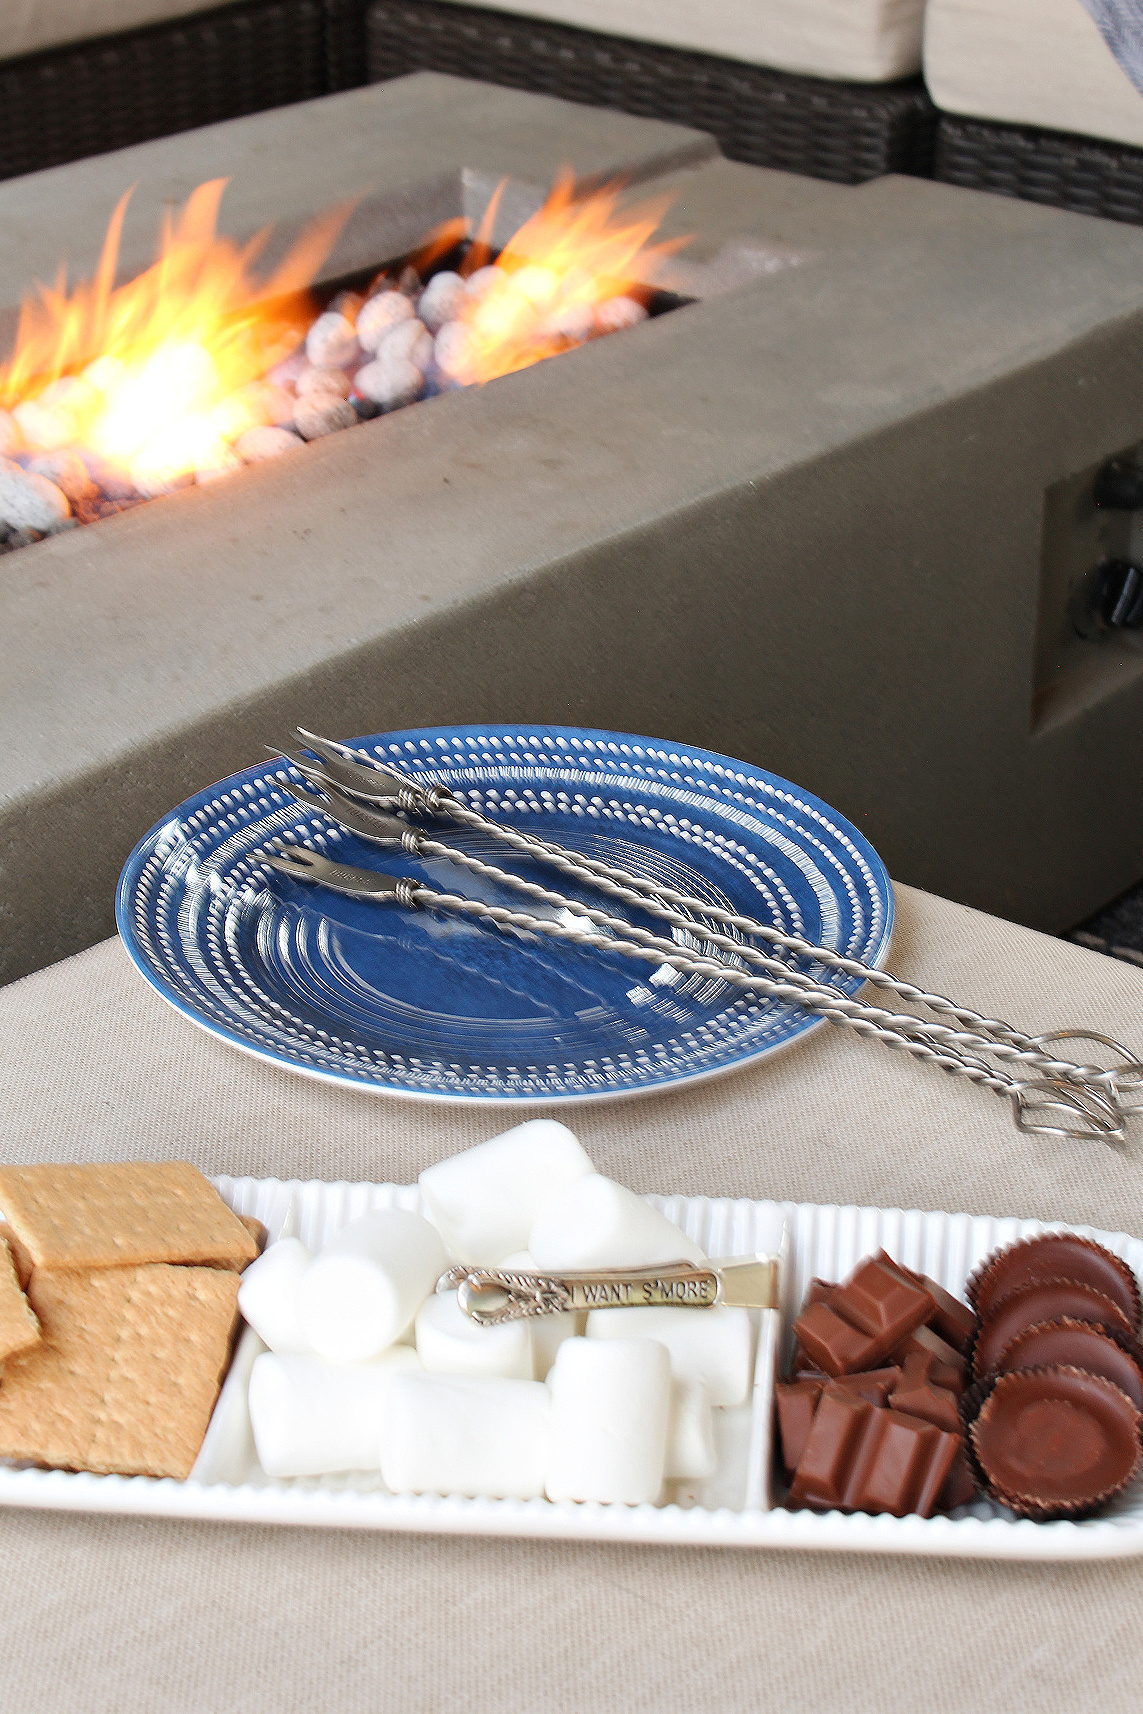 S'mores platter by a fire table.